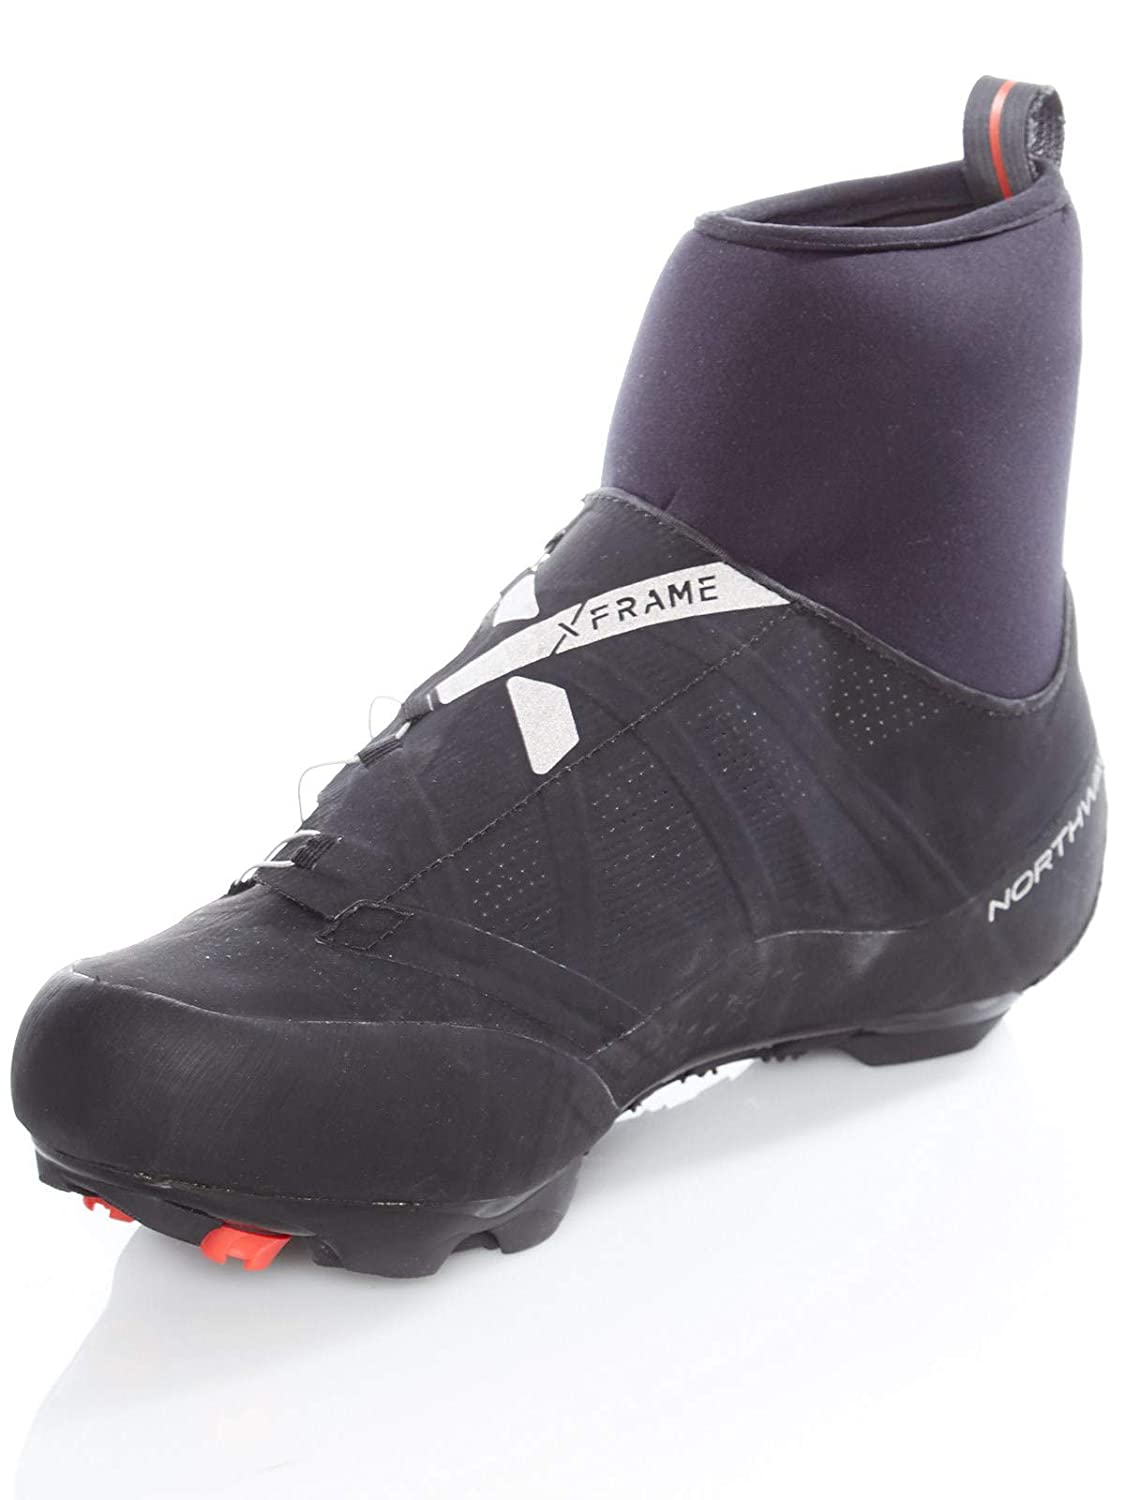 9676ef9a460 Amazon.com: Northwave Men's Extreme XCM GTX Winter Shoes: Sports & Outdoors